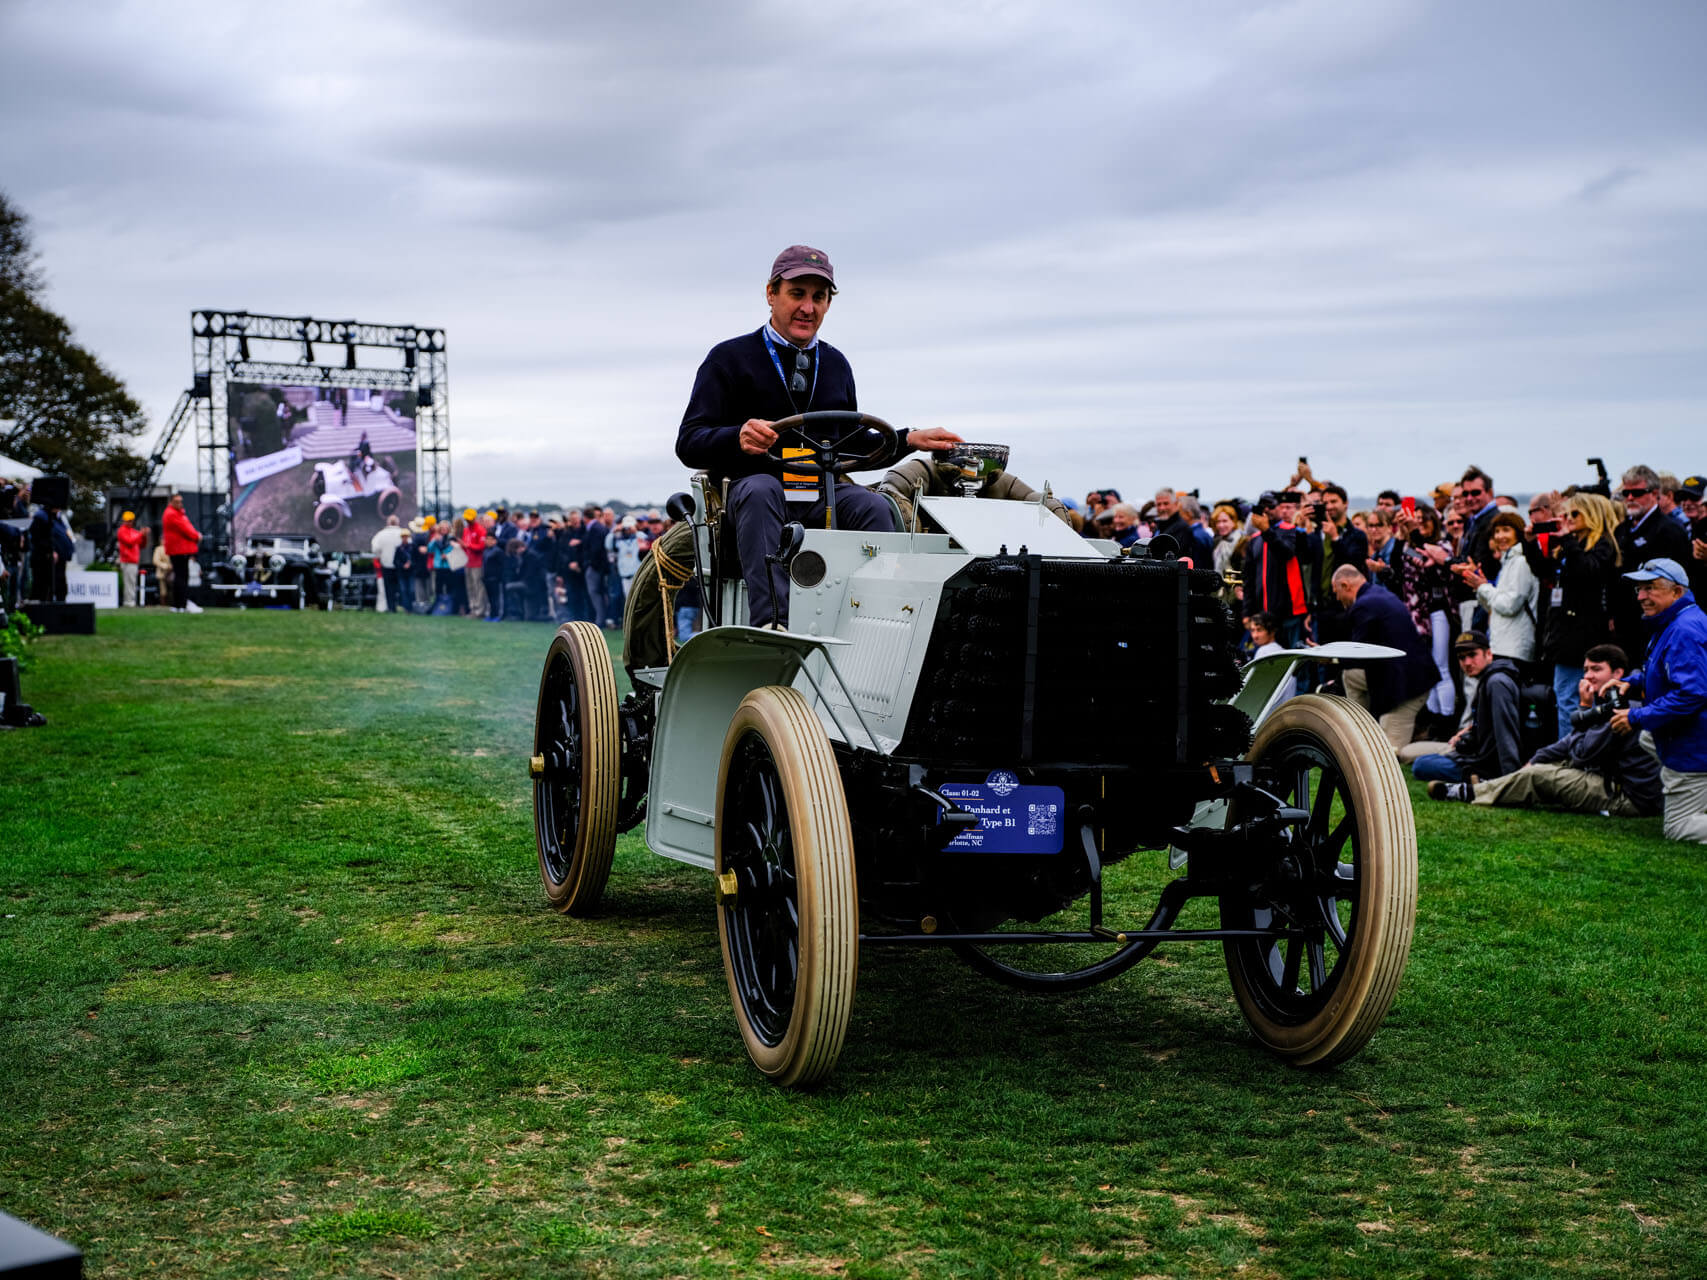 Man driving a classic car in a parade at Audrain's Newport Concours Motor Week